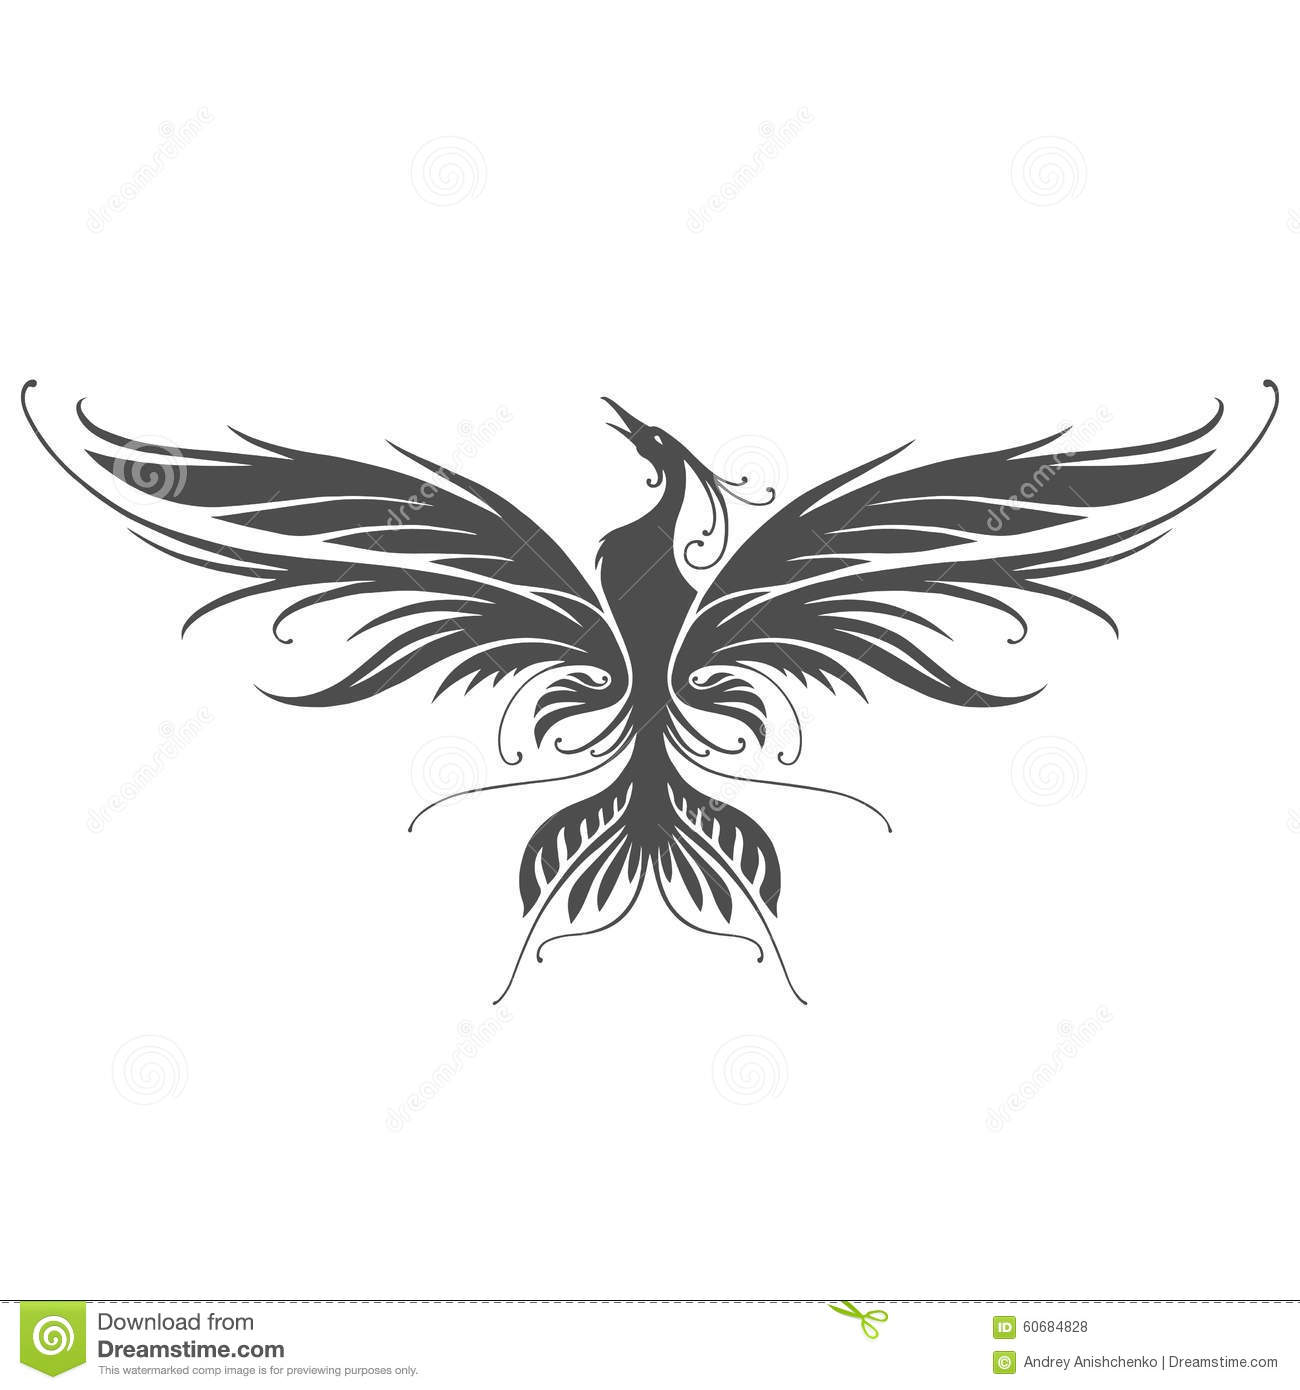 f34336264ed6e Phoenix silhouette in vector on white background. Designers Also Selected  These Stock Illustrations